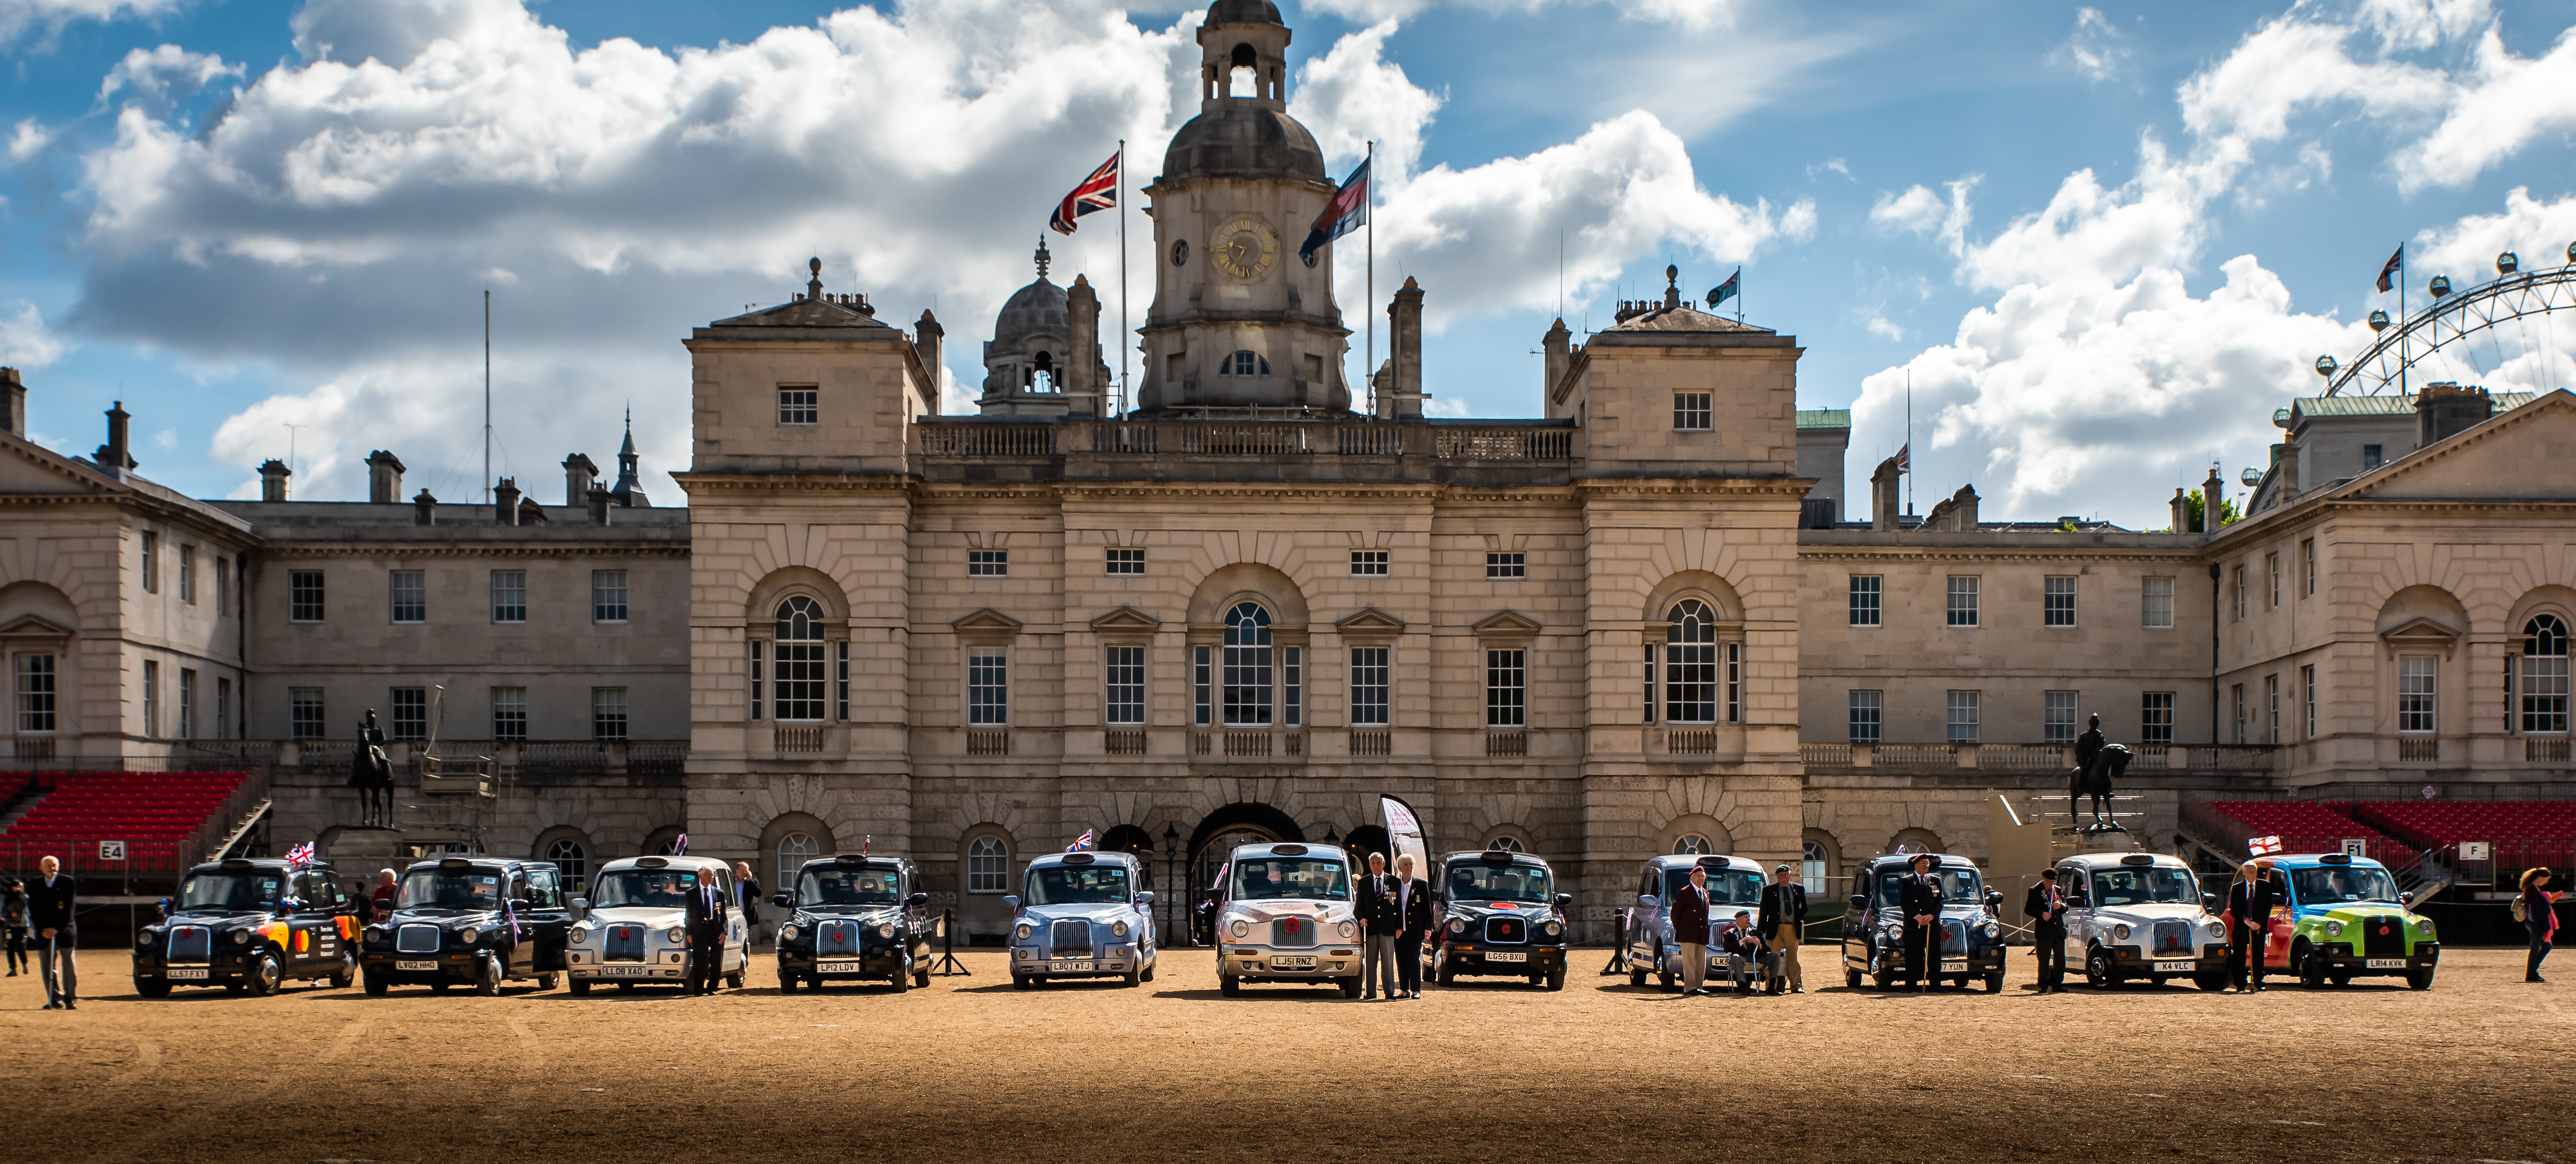 taxis_at_horse_guards